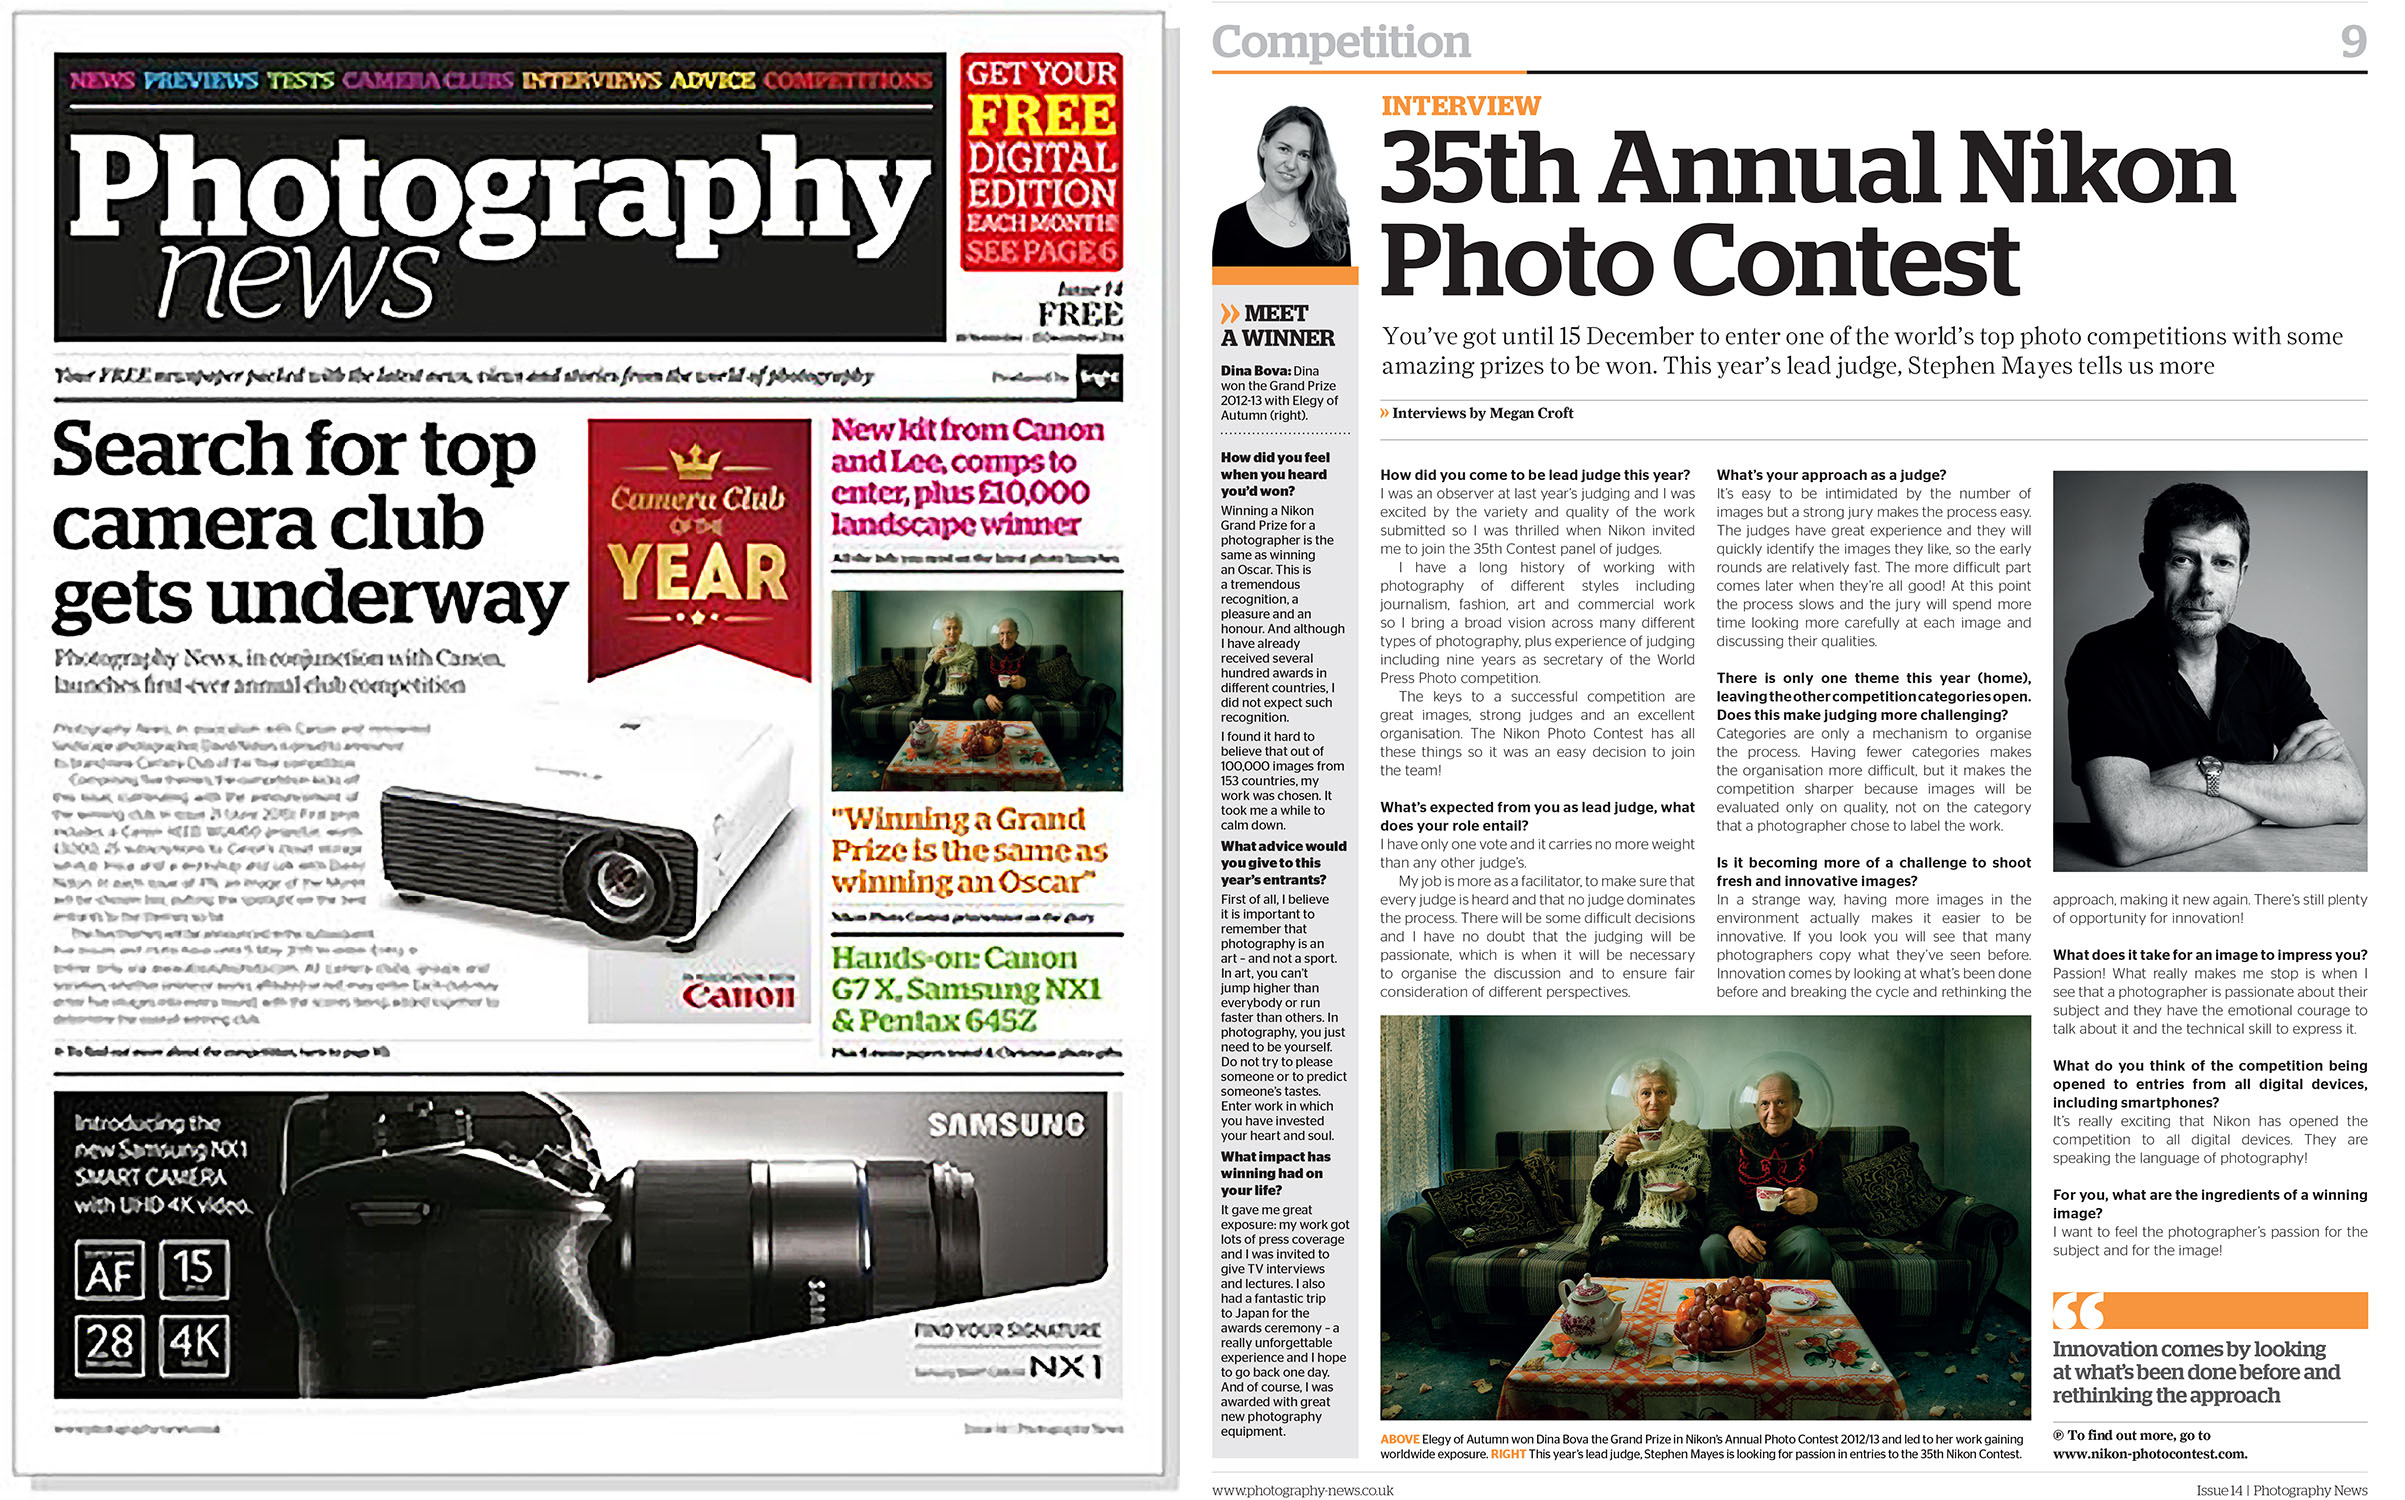 Photography news, issue 14